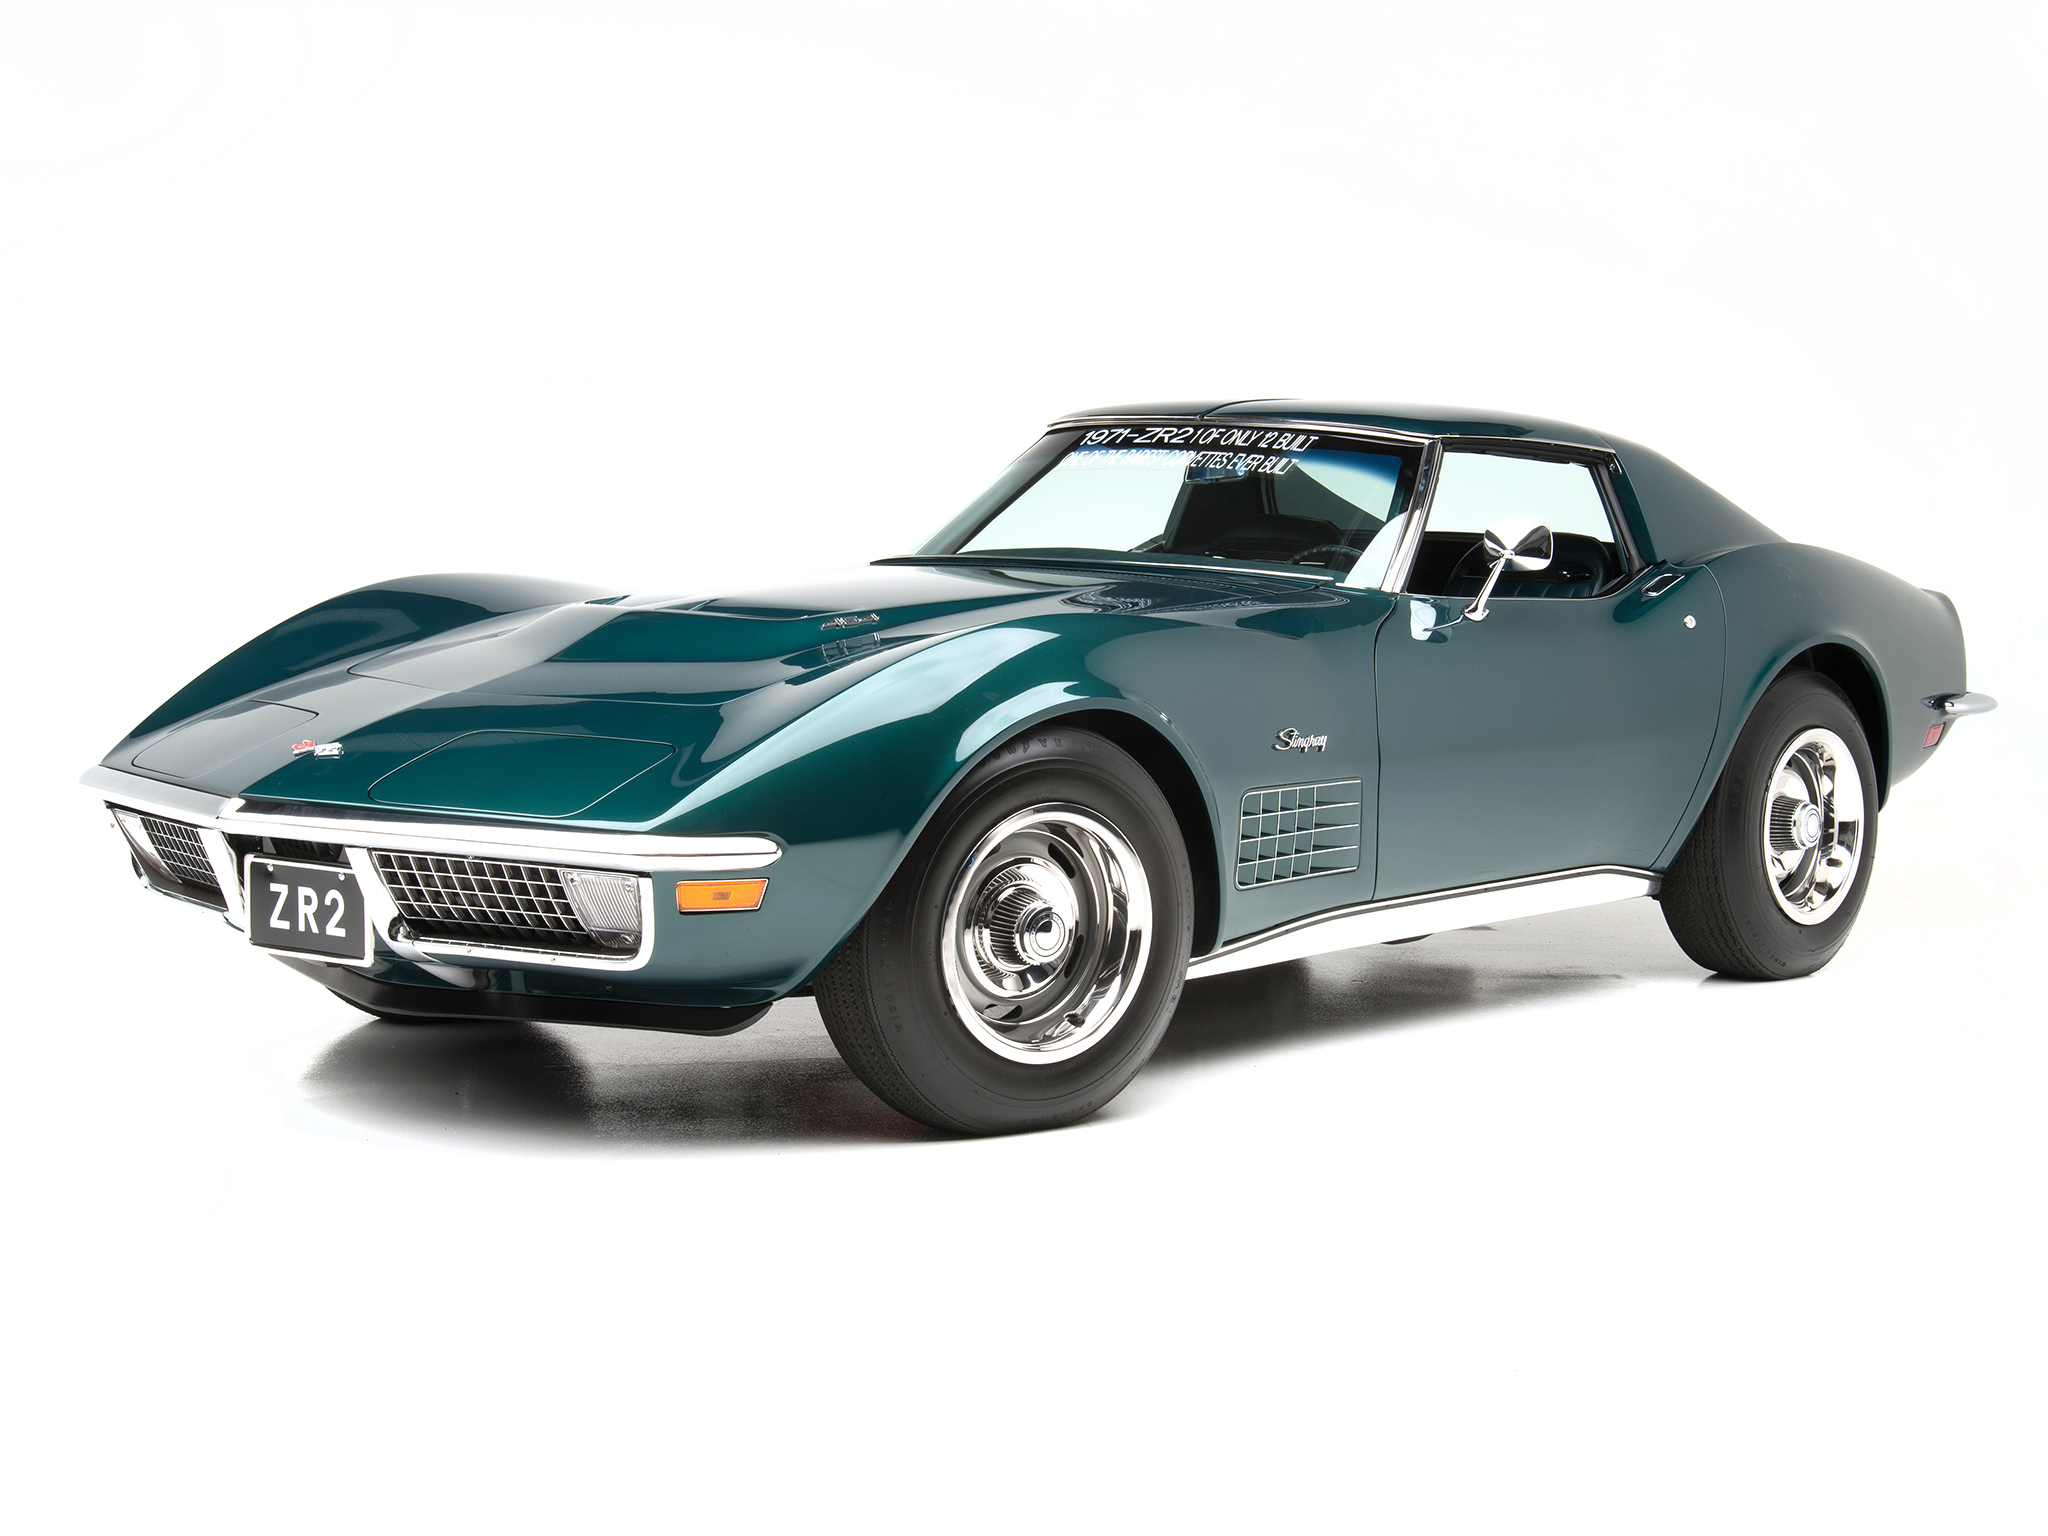 1971 corvette stingray zr 2 ls6 454 425hp c 3 muscle supercar. Cars Review. Best American Auto & Cars Review